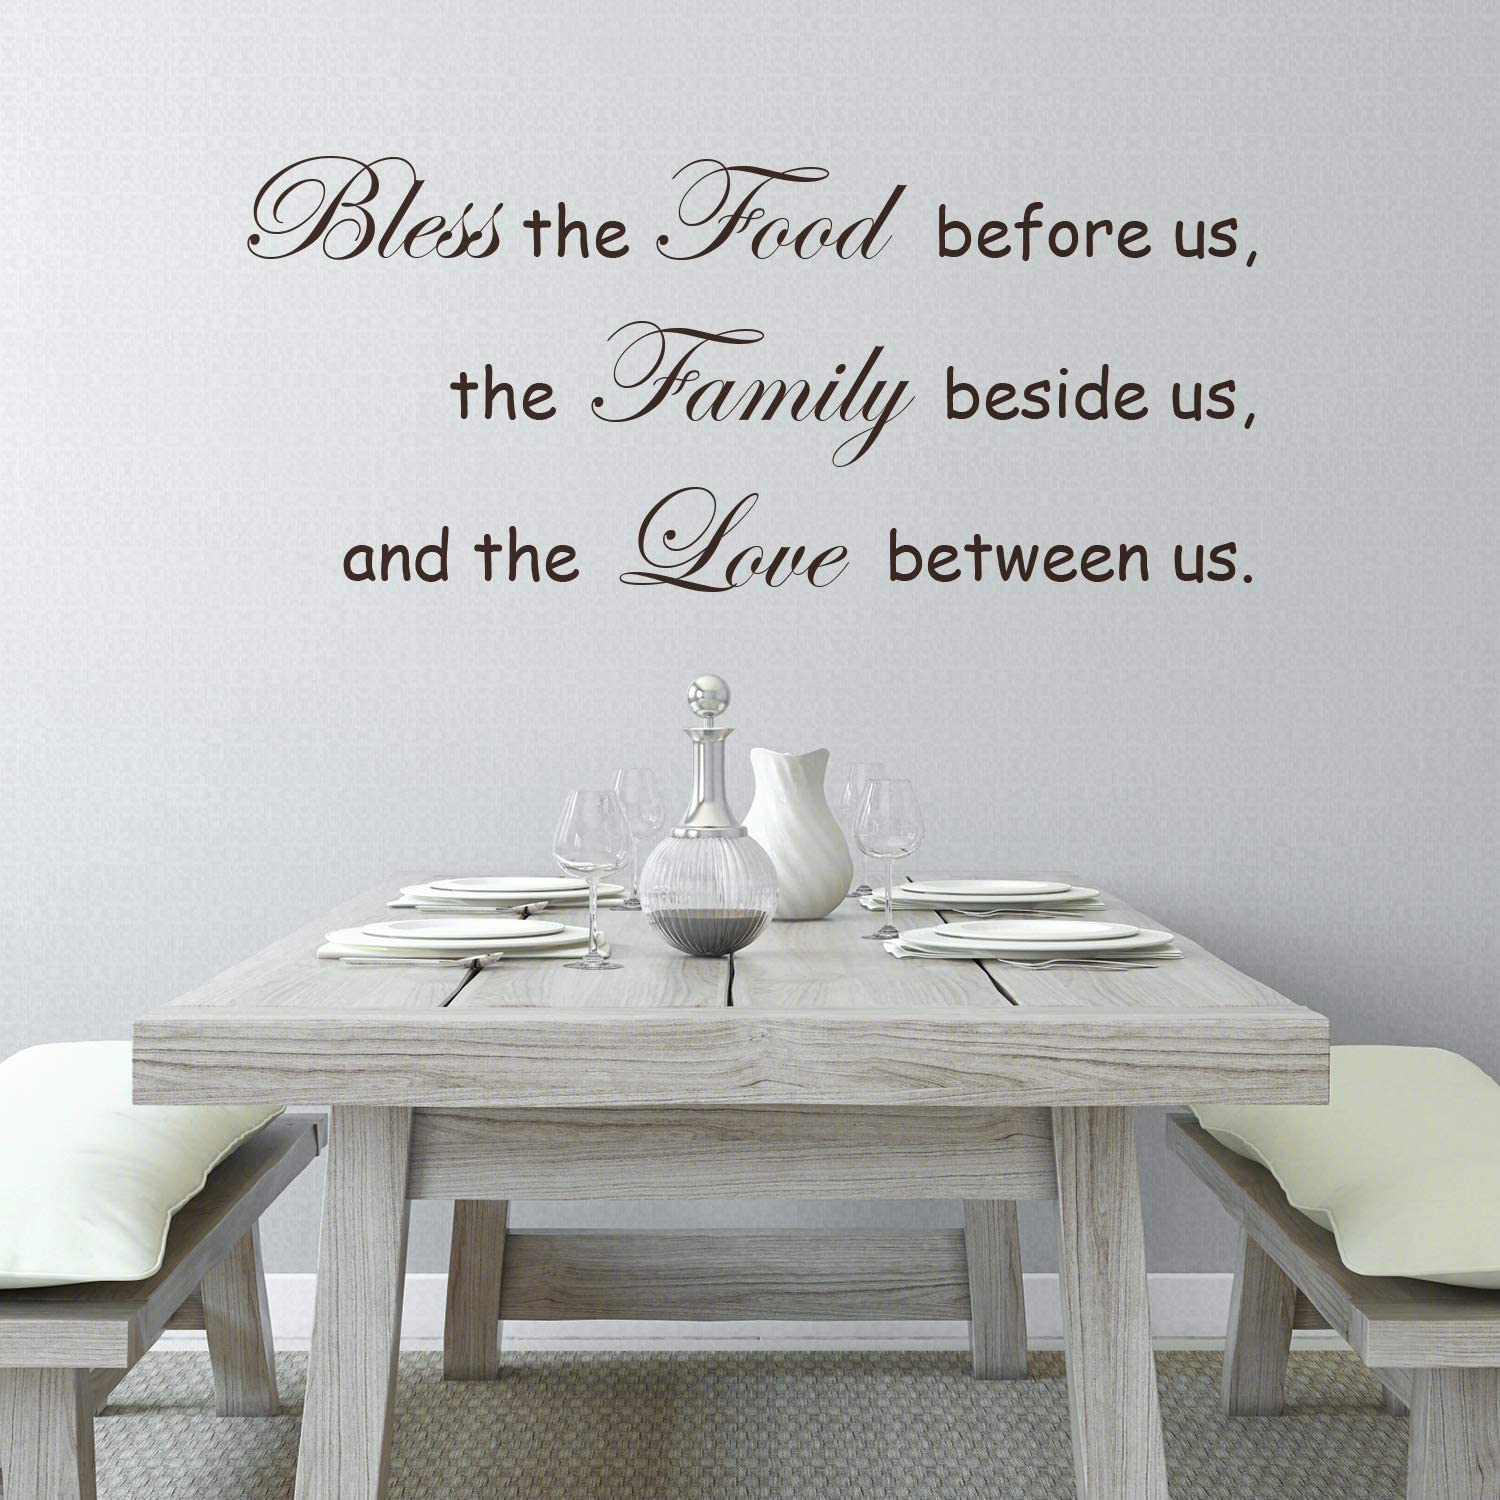 Rotumaty 'Bless The Food Before us' Prayer Wall Stickers Kitchen & Dining Room Positive Wall Decal Vinyl Home Decor